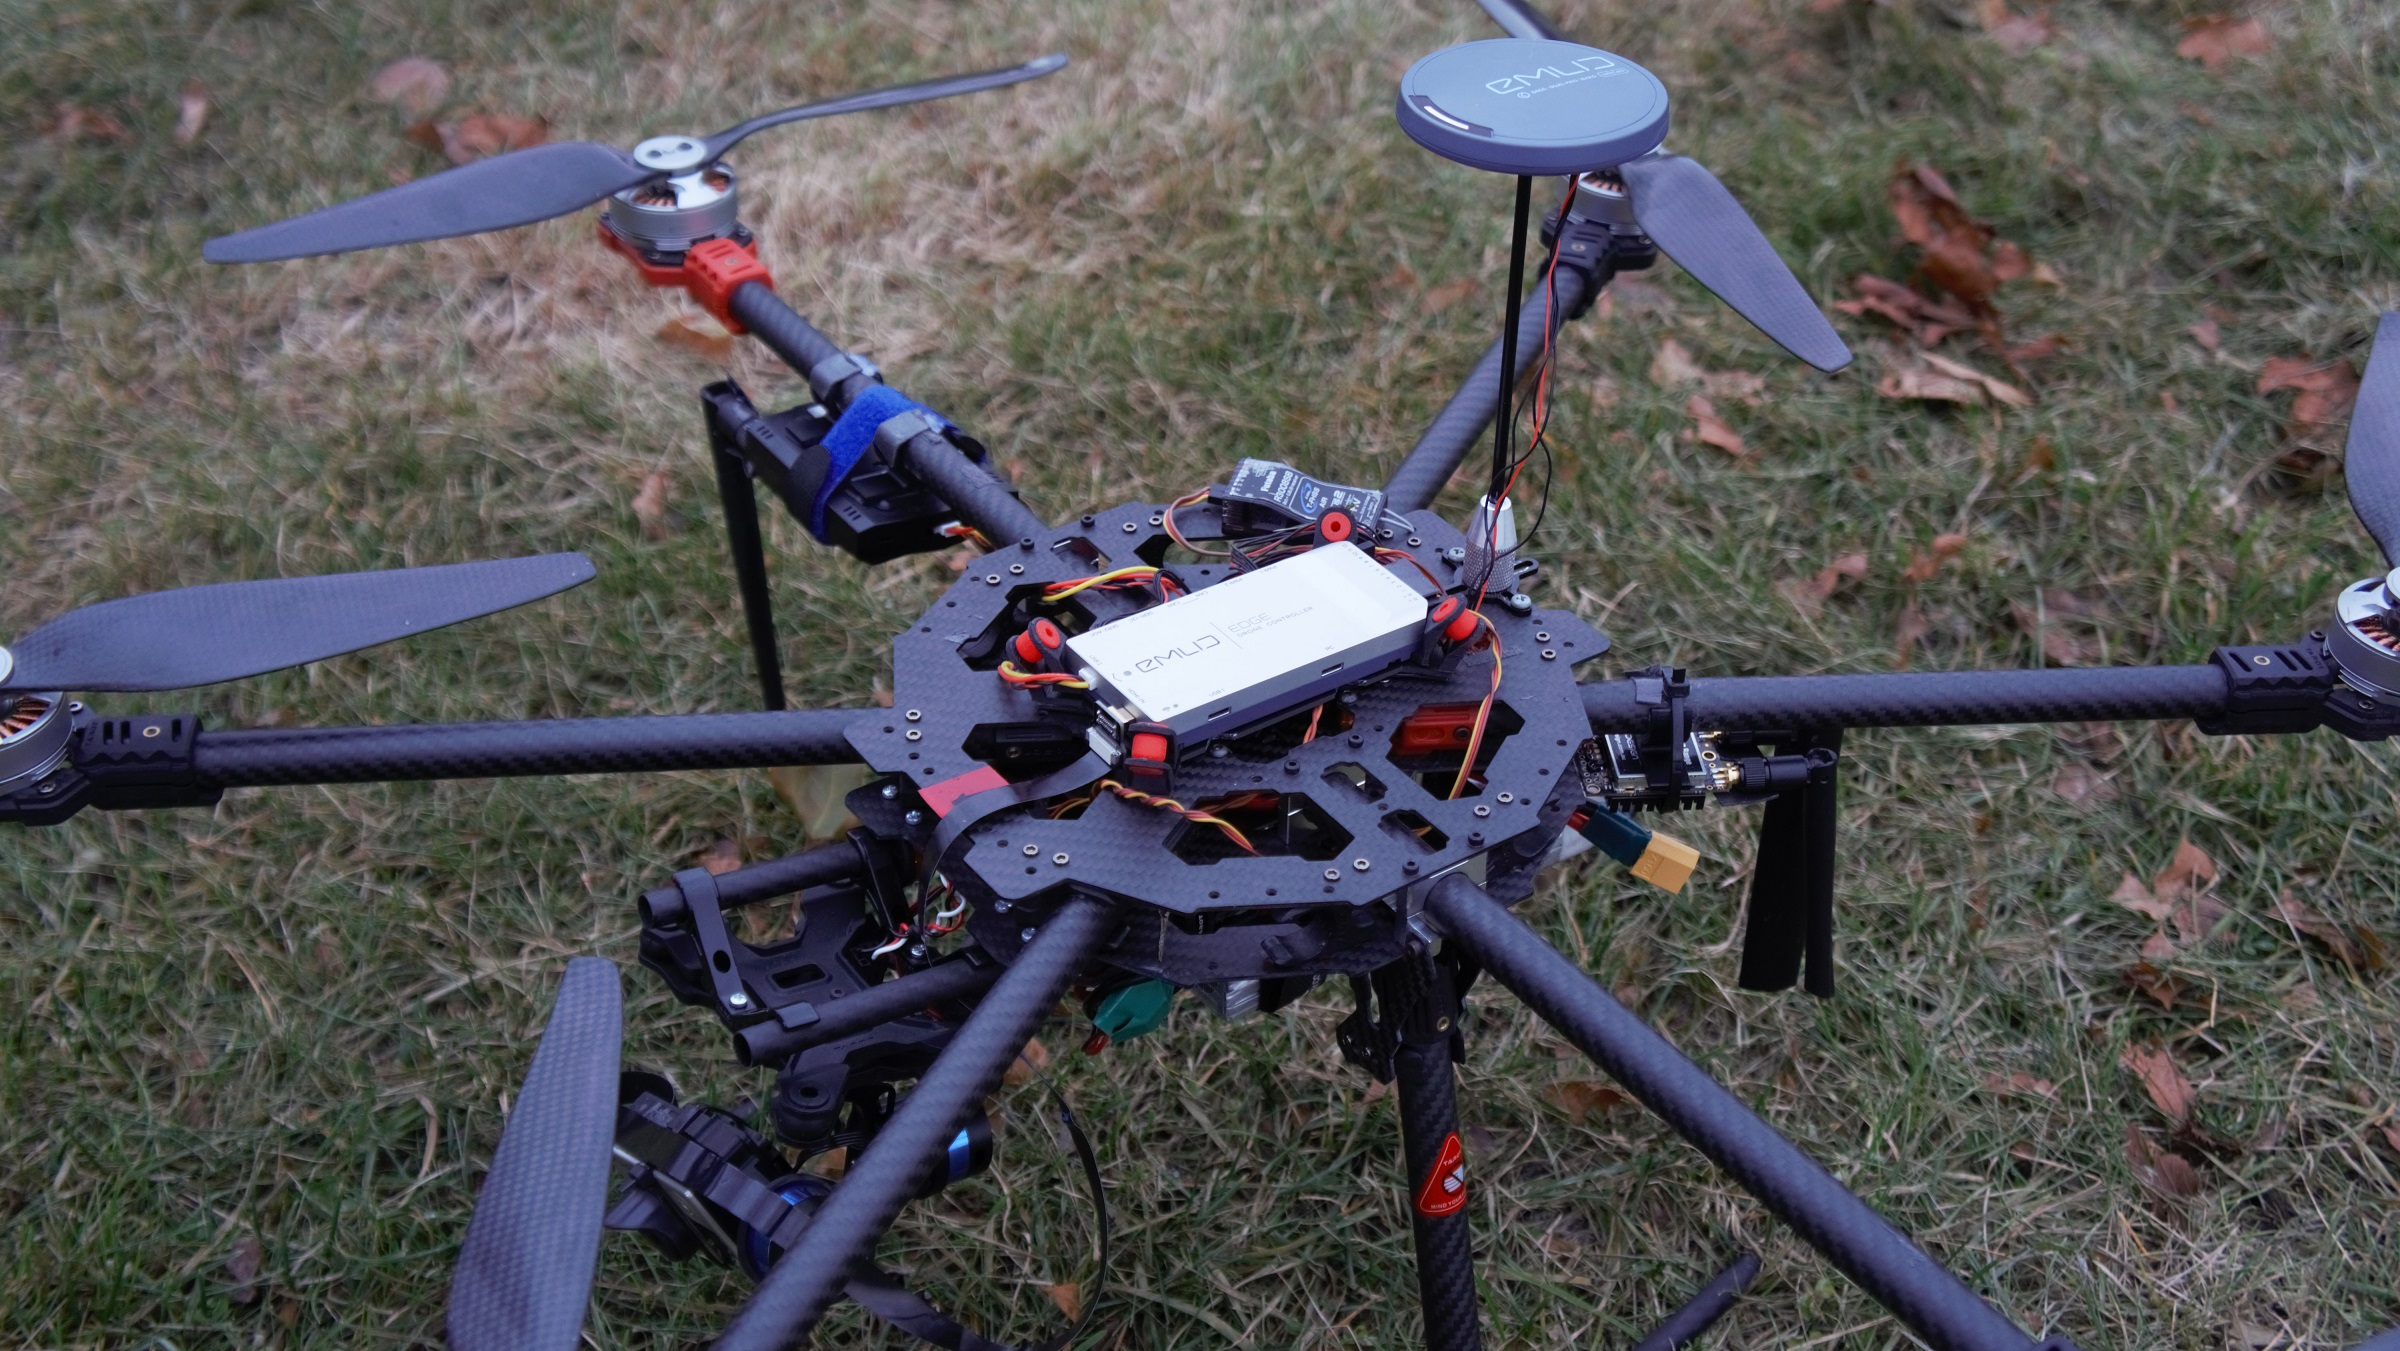 Edge Hexacopter With Gopro Project Share Community Forum Wiring Diagram Dsc074982400x1351 977 Kb